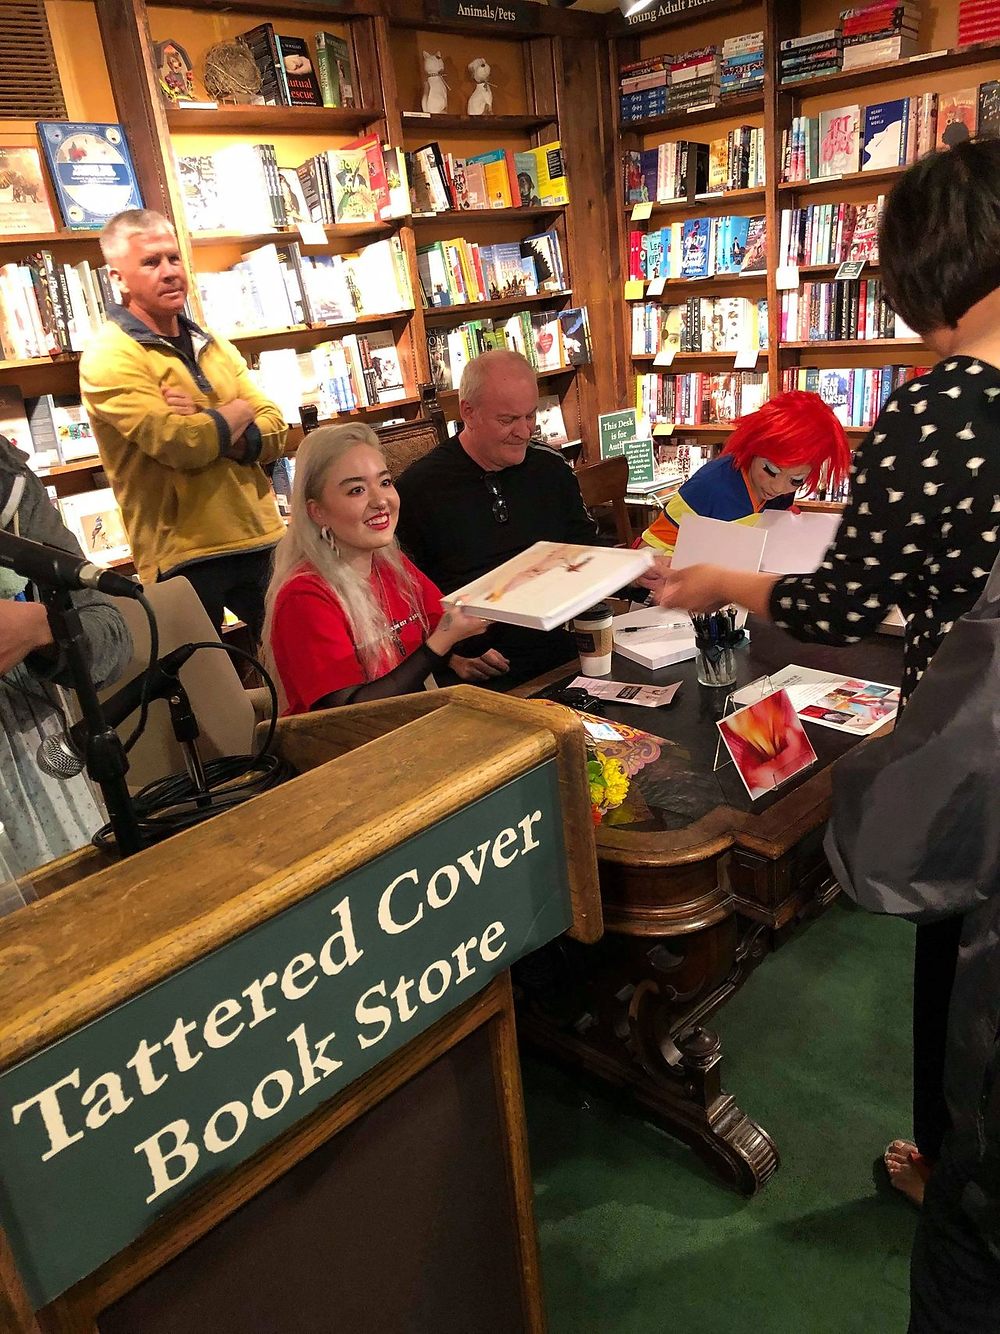 Judy Choi Francis George Phoenix Brown Daron Mueller Tattered Cover Book Signing Photography Writer Poet Denver Colorado